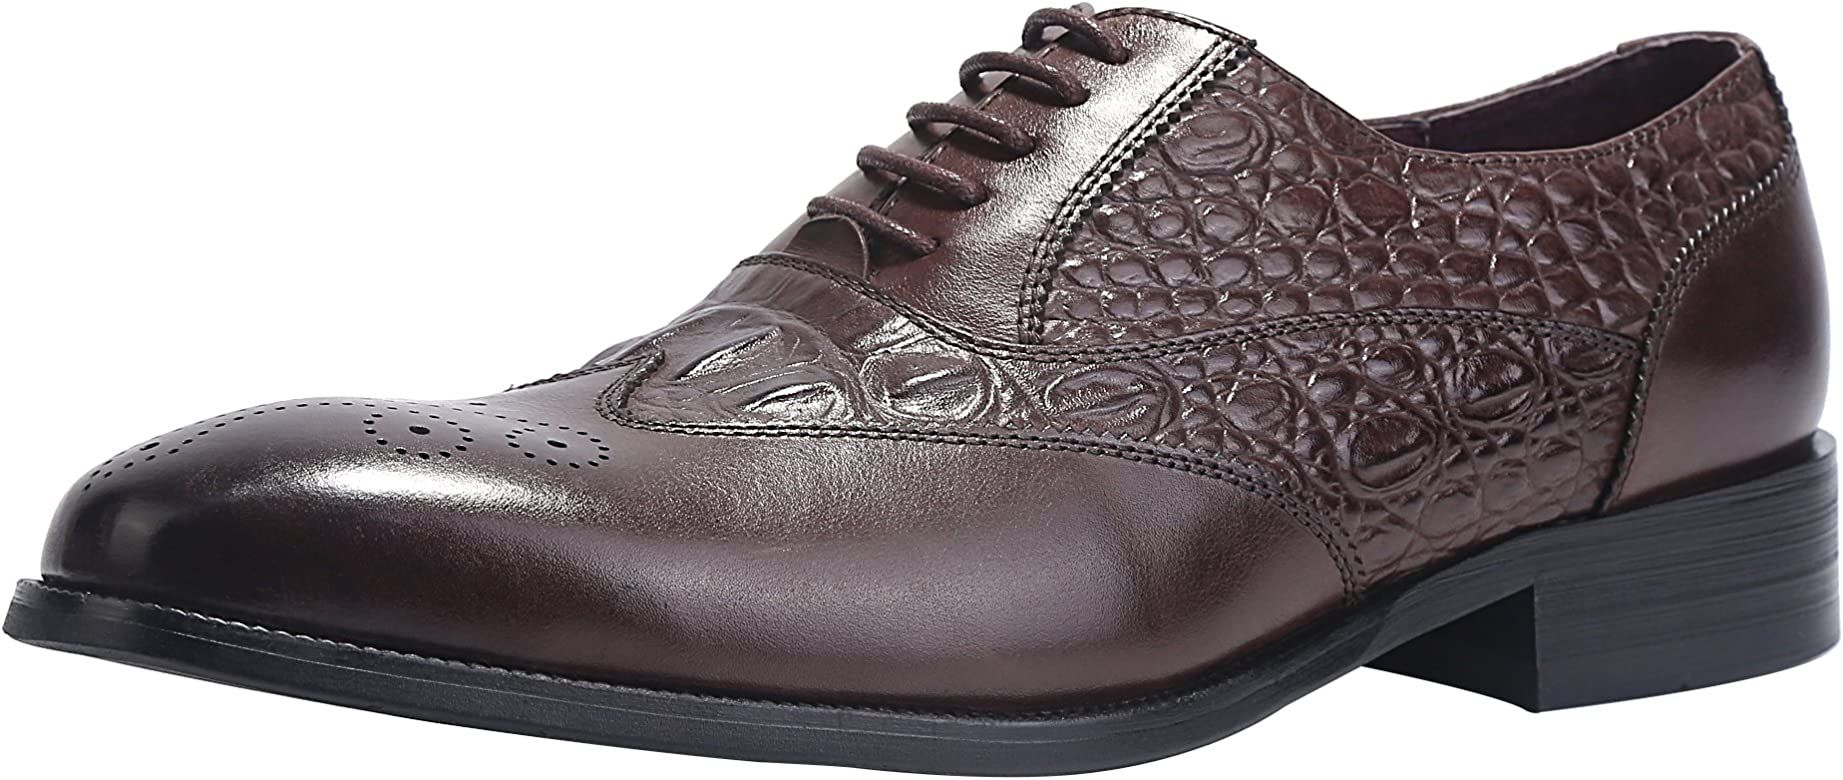 54eda0fbe ELANROMAN Mens Leather Oxford Dress Shoes Wingtip Brogue Handcrafted Men's  Genuine Leather Lace up Dress Leather